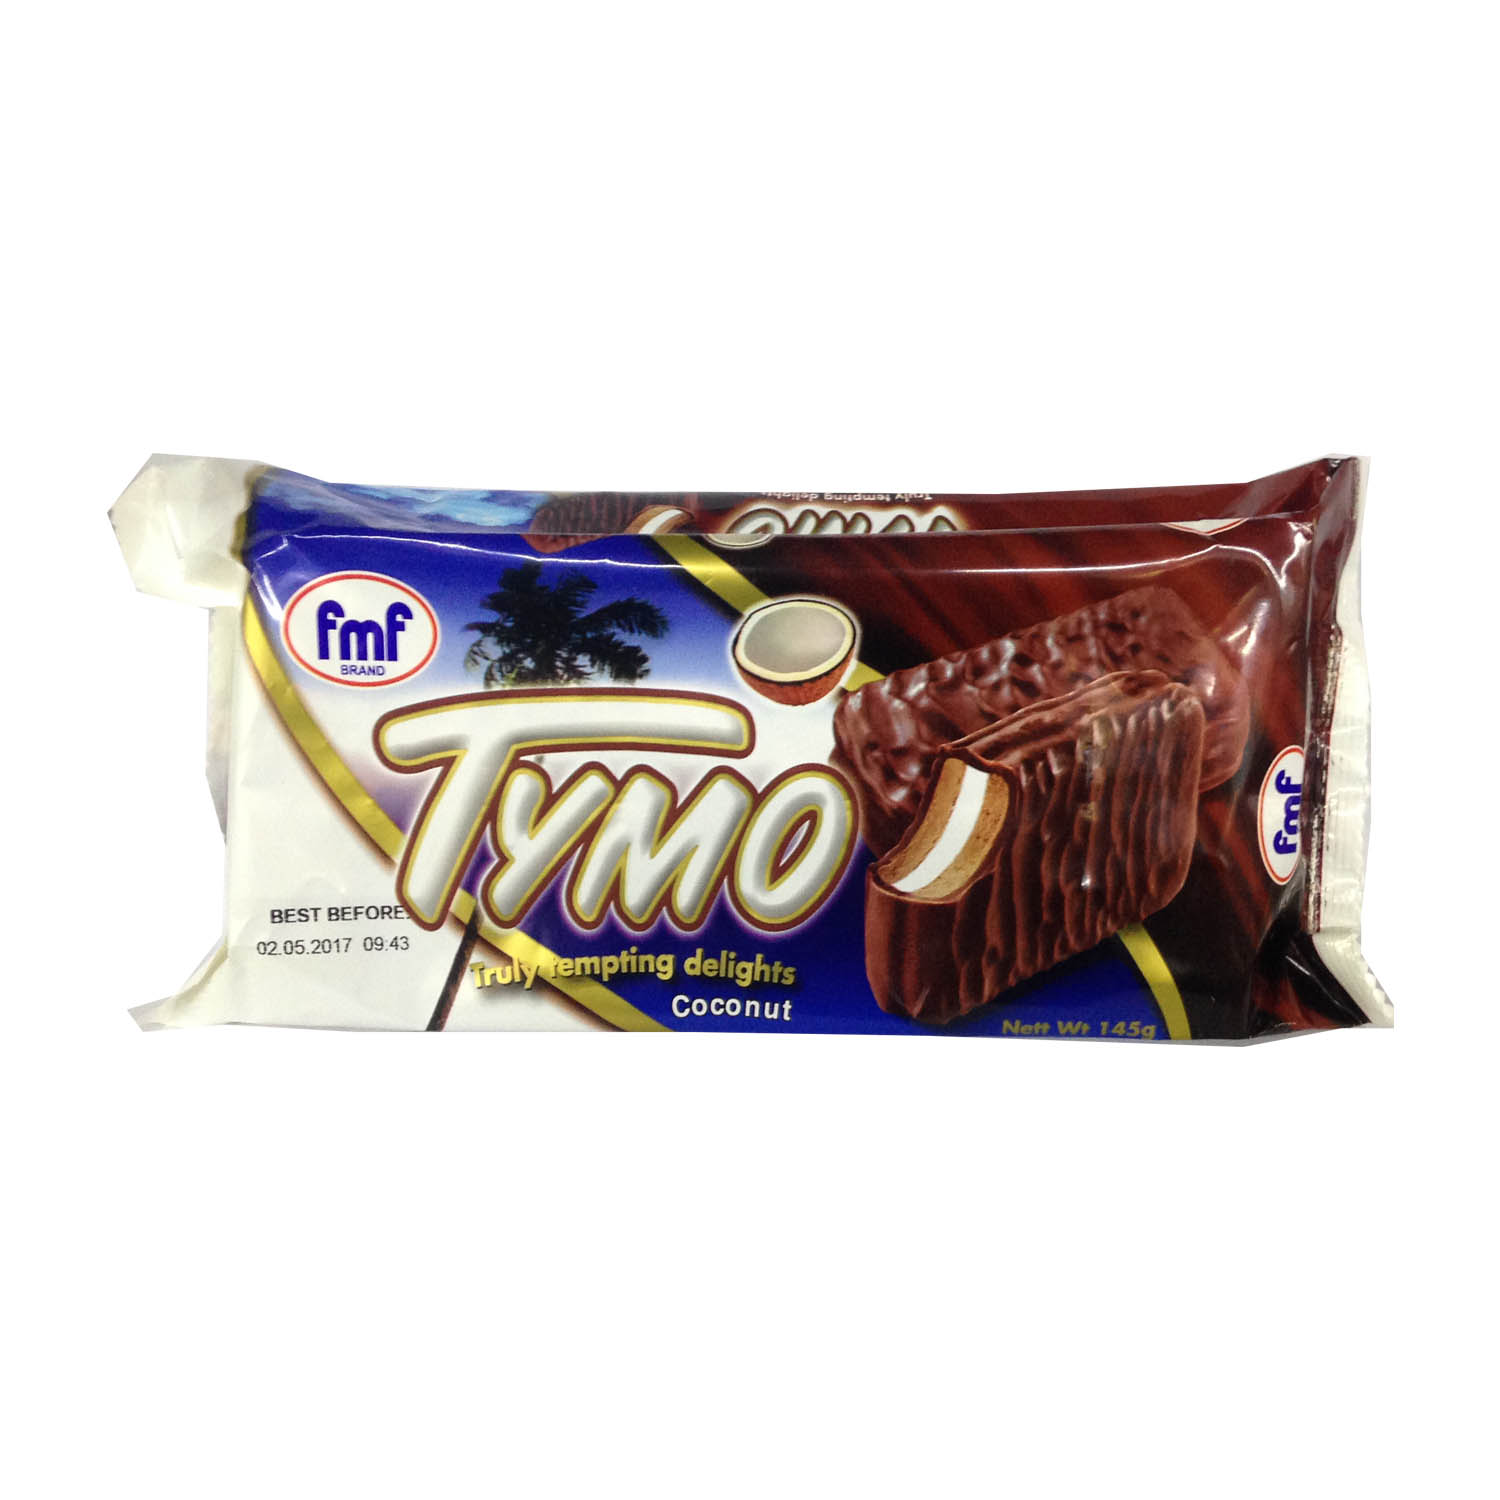 FMF Tymo Chocolate Coated Biscuit - Coconut 145g